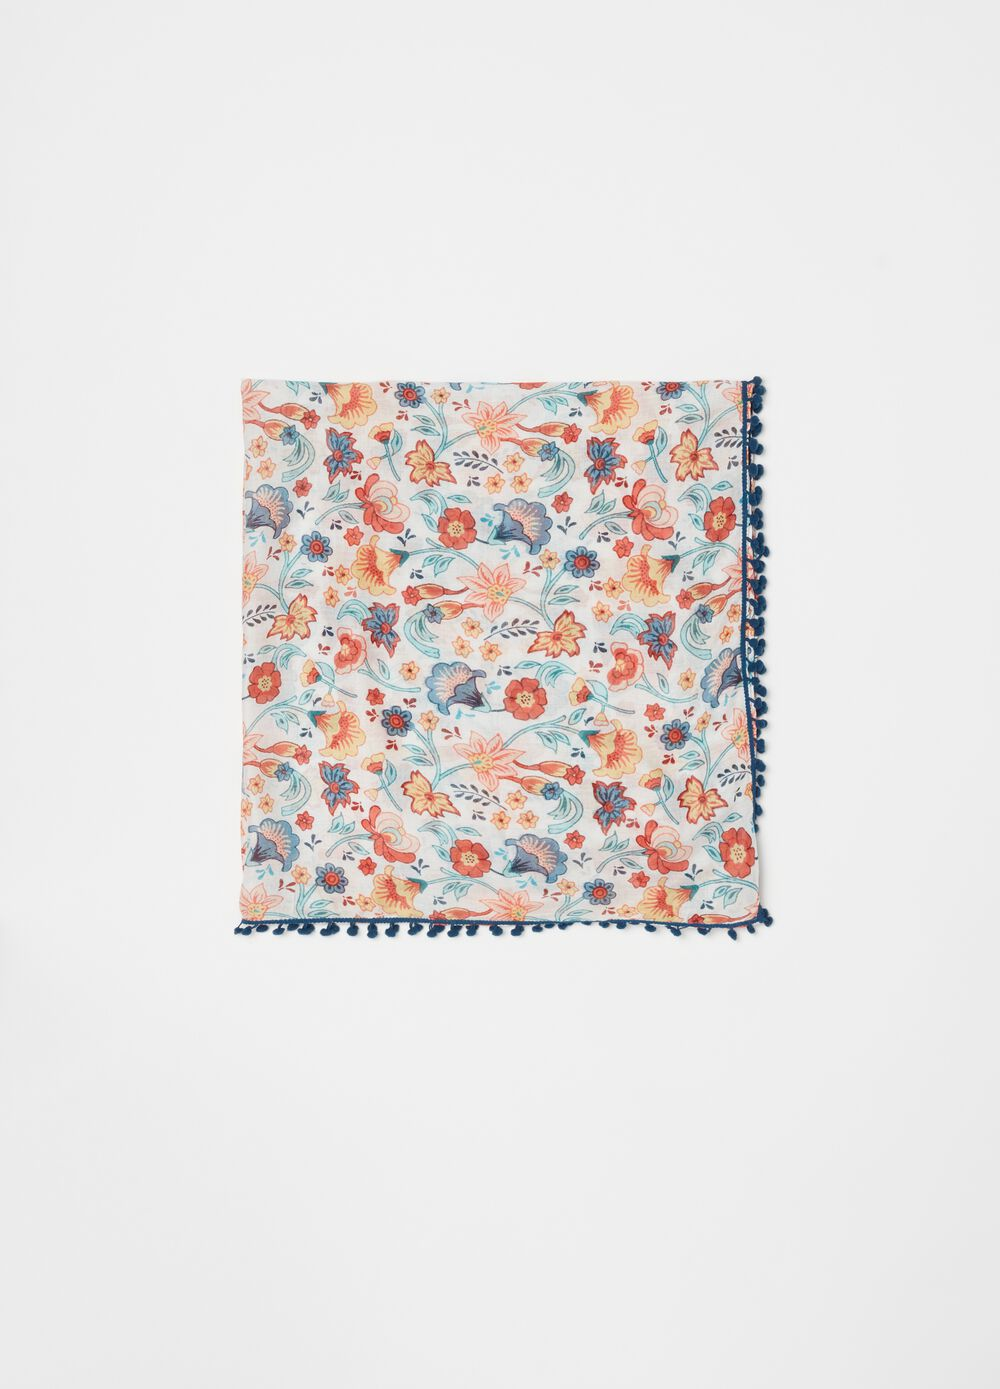 100% viscose foulard with all-over print